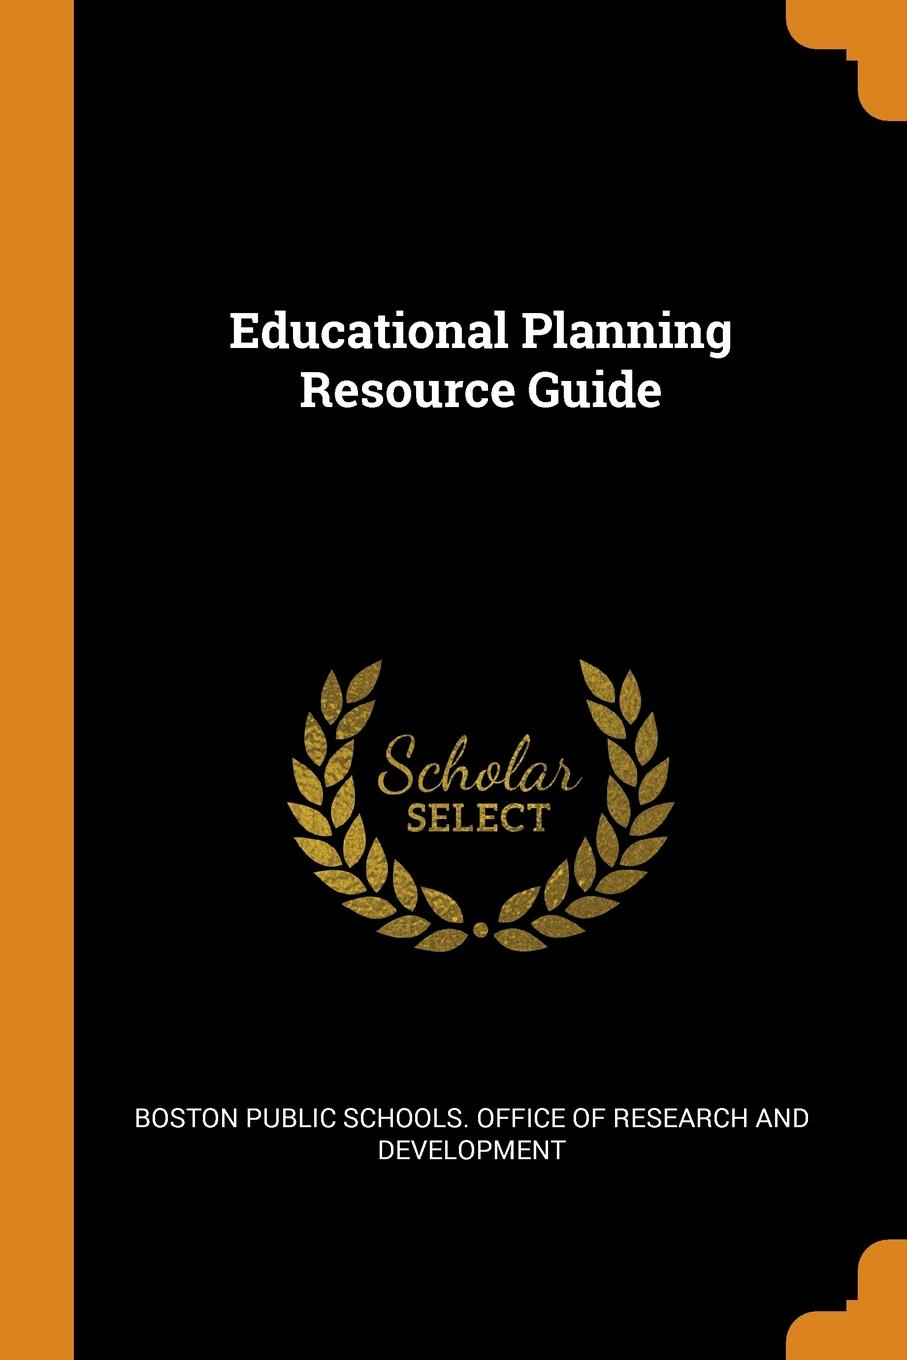 Educational Planning Resource Guide